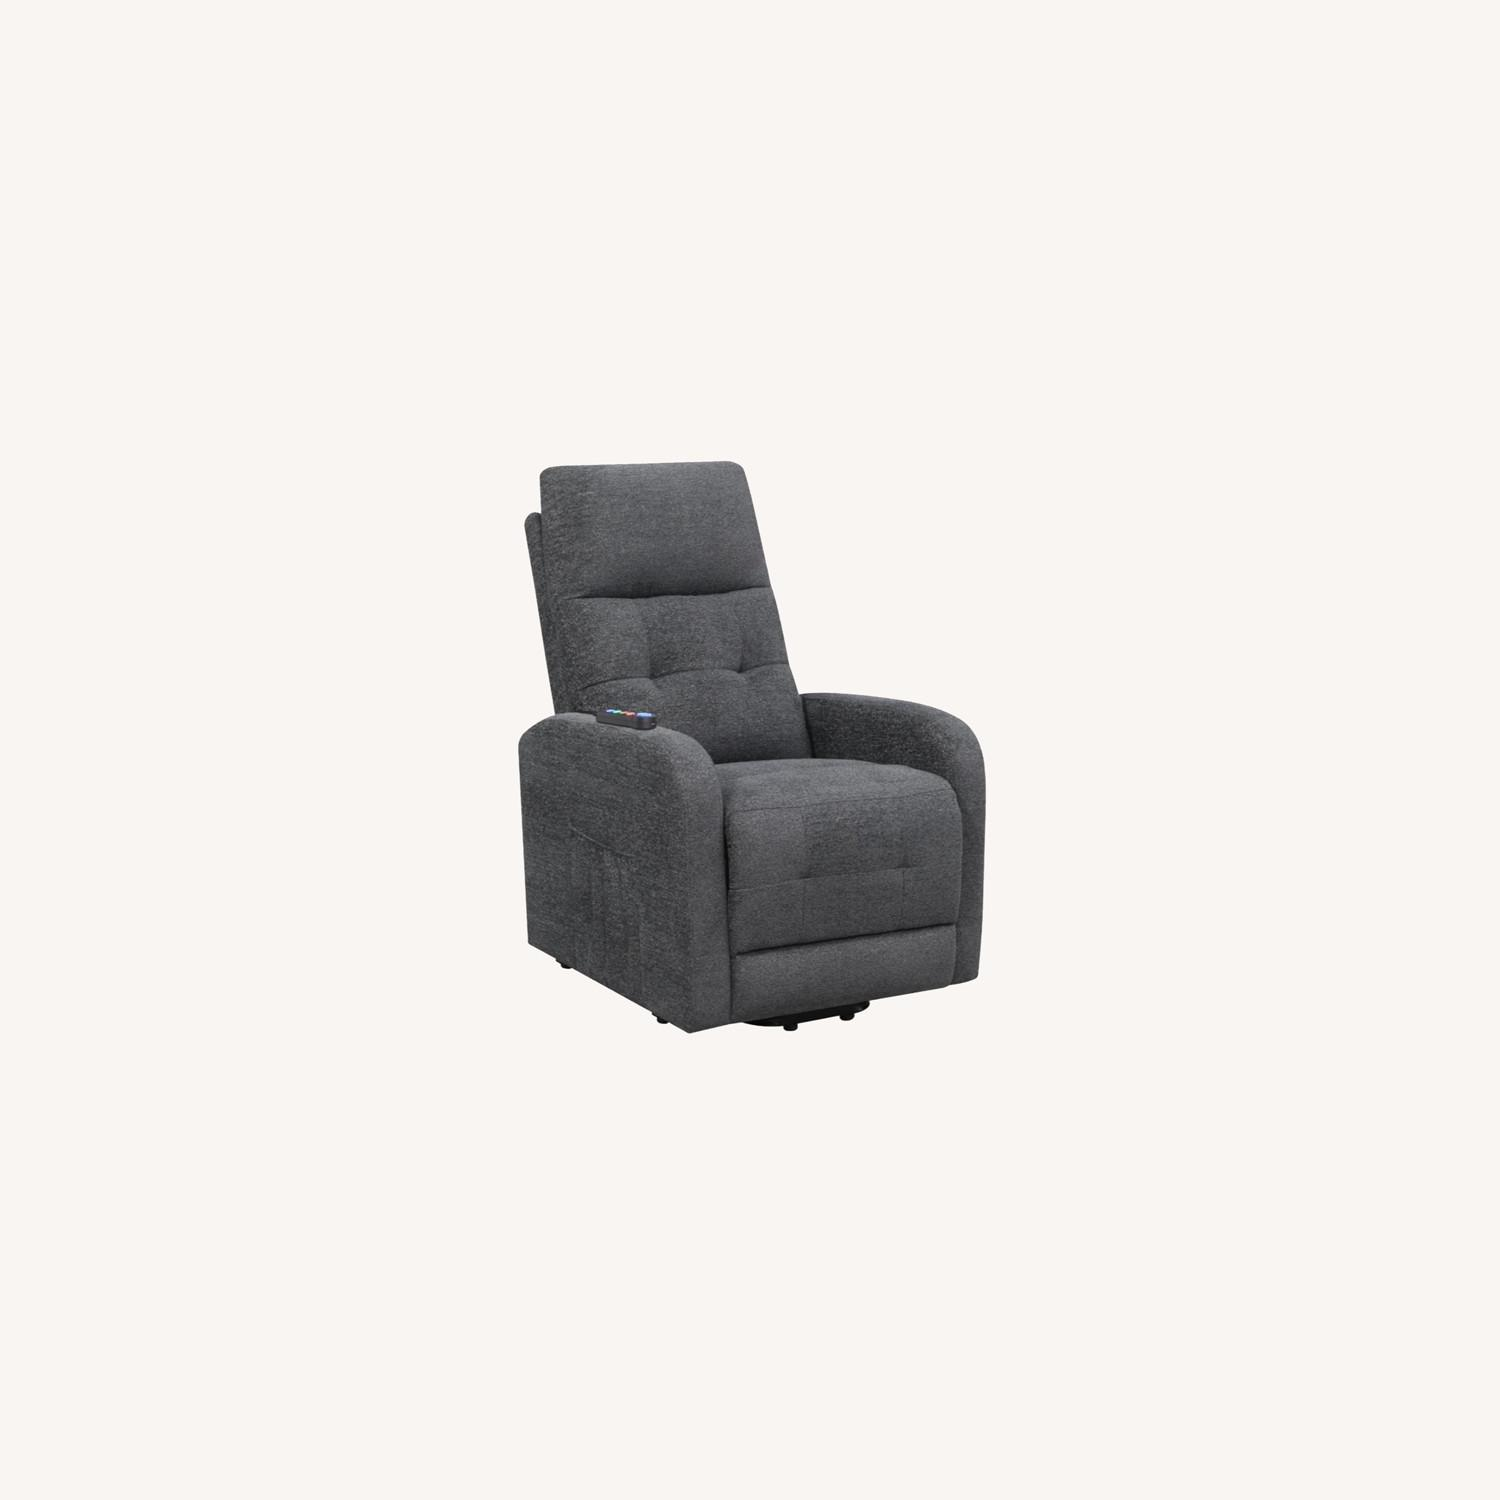 Power Lift Massage Chair In Charcoal Fabric - image-7